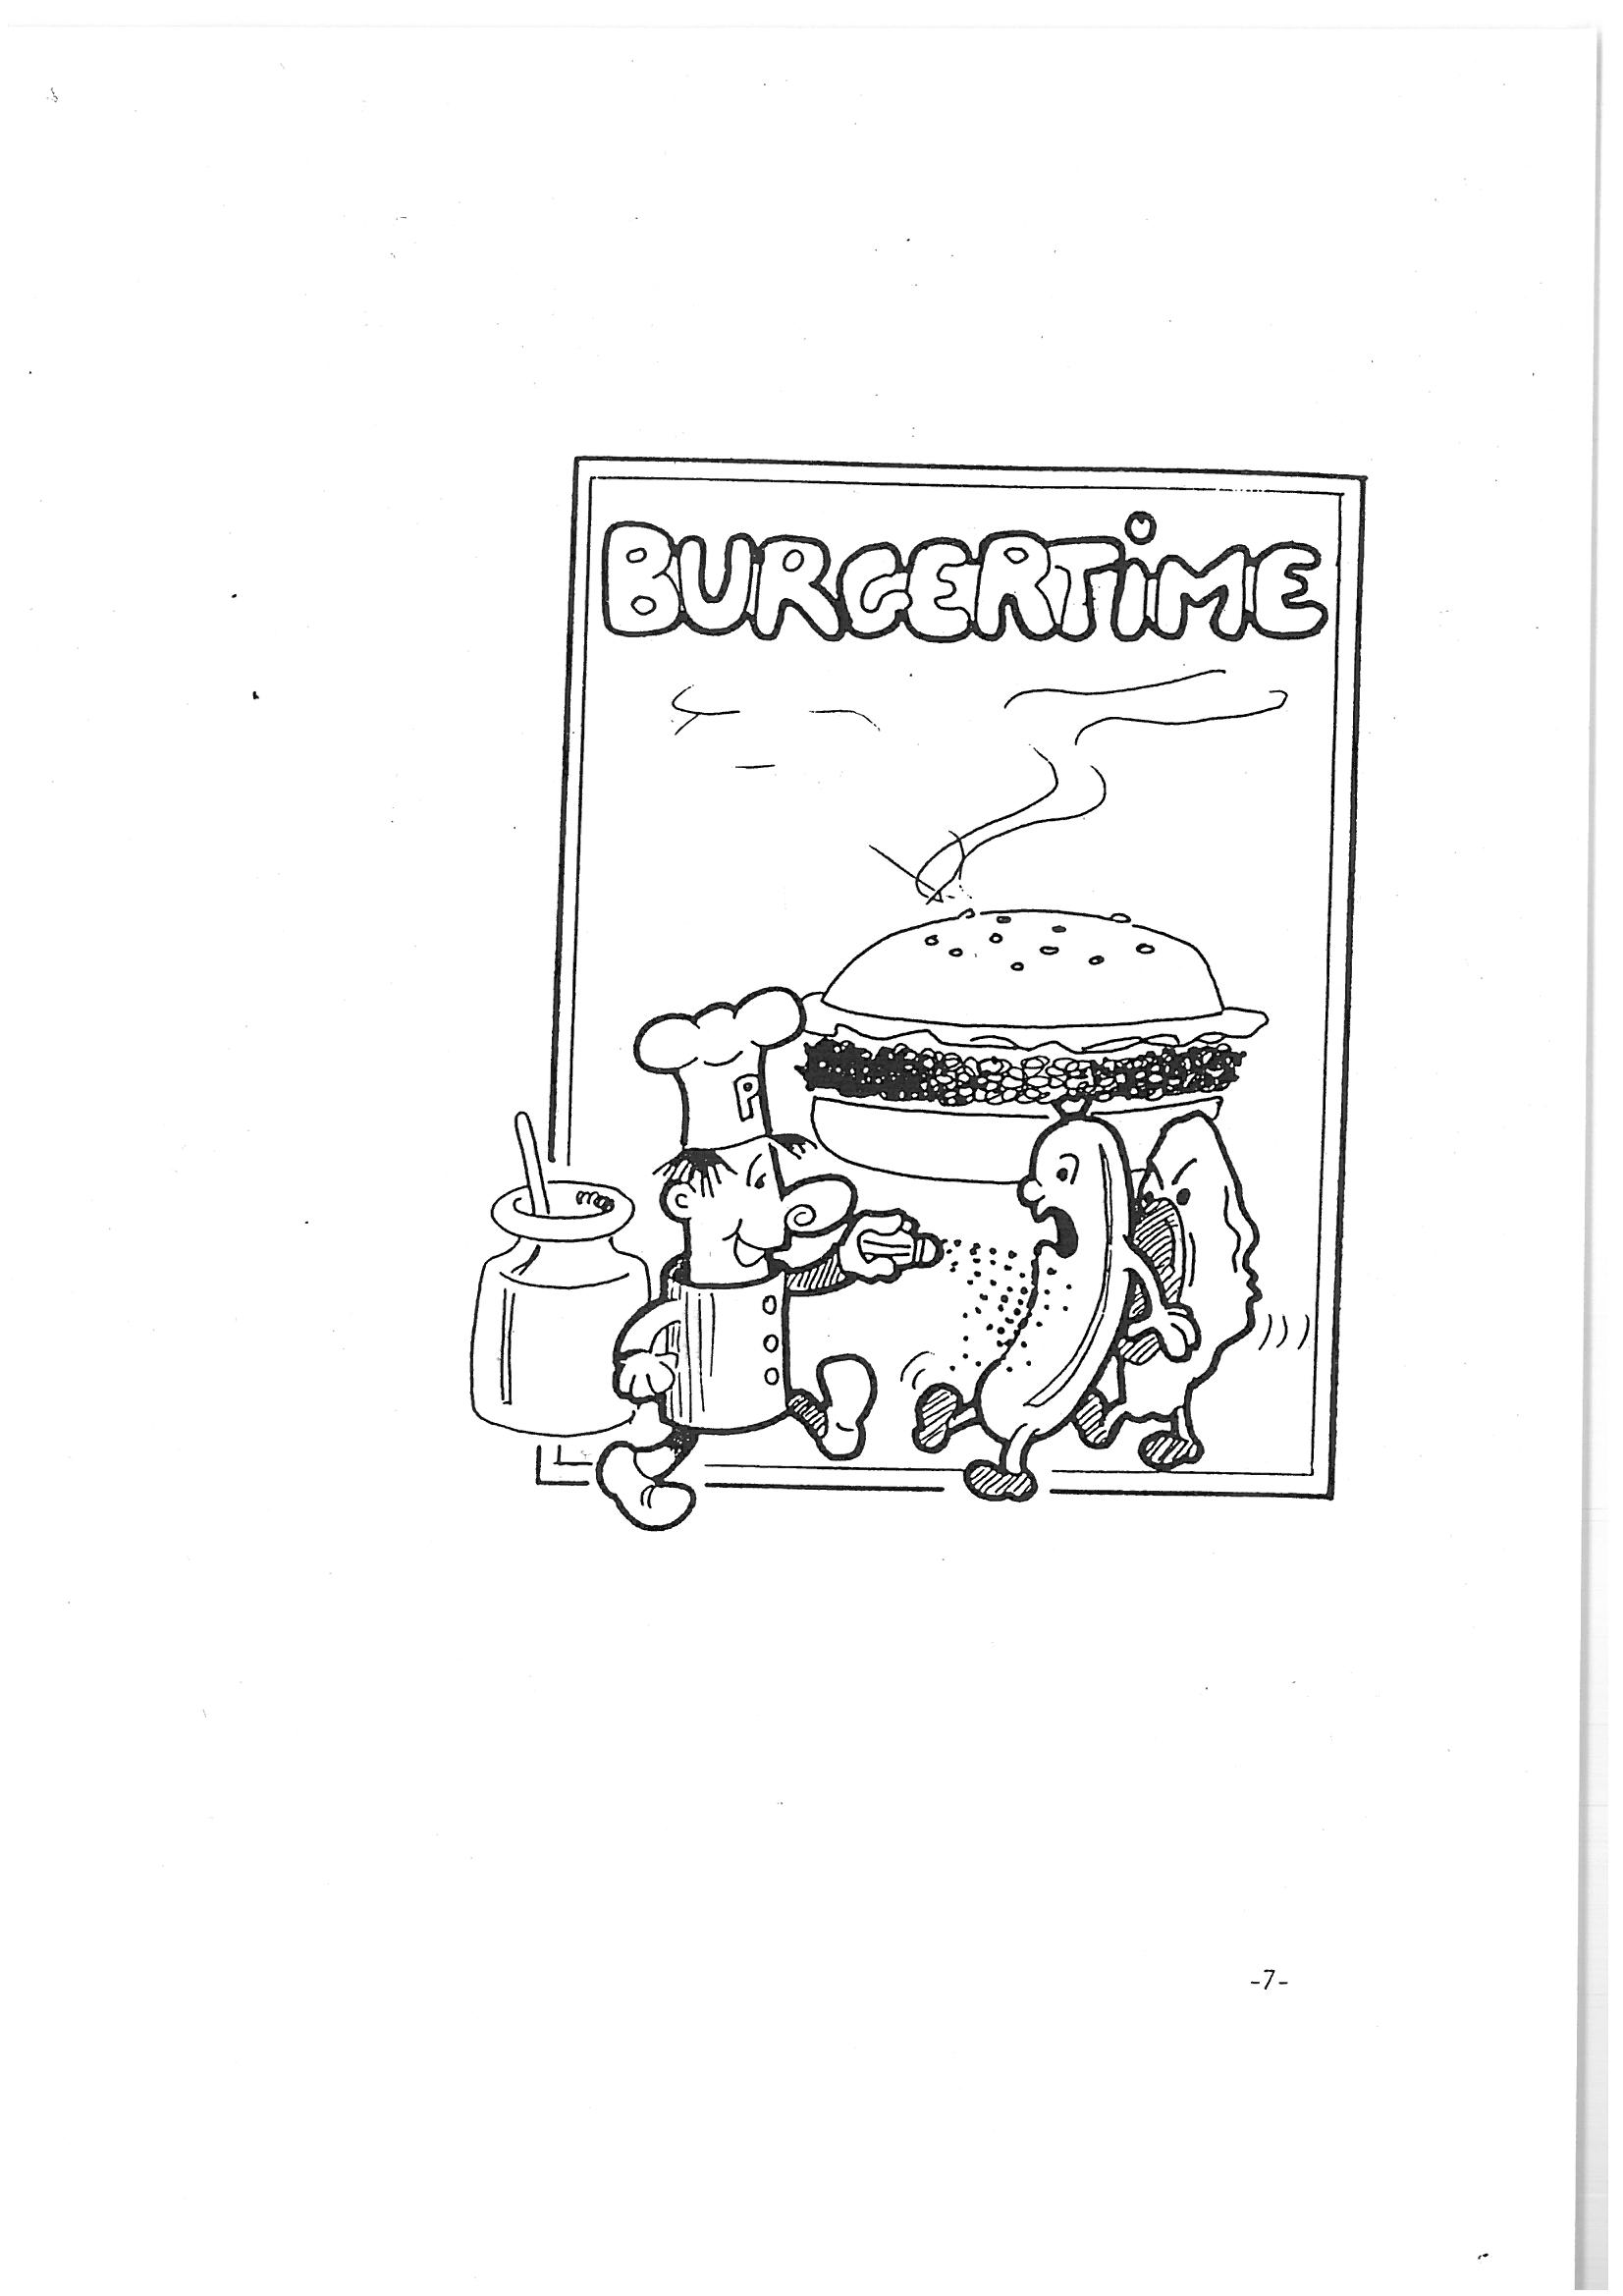 Burgertime for Colecovision